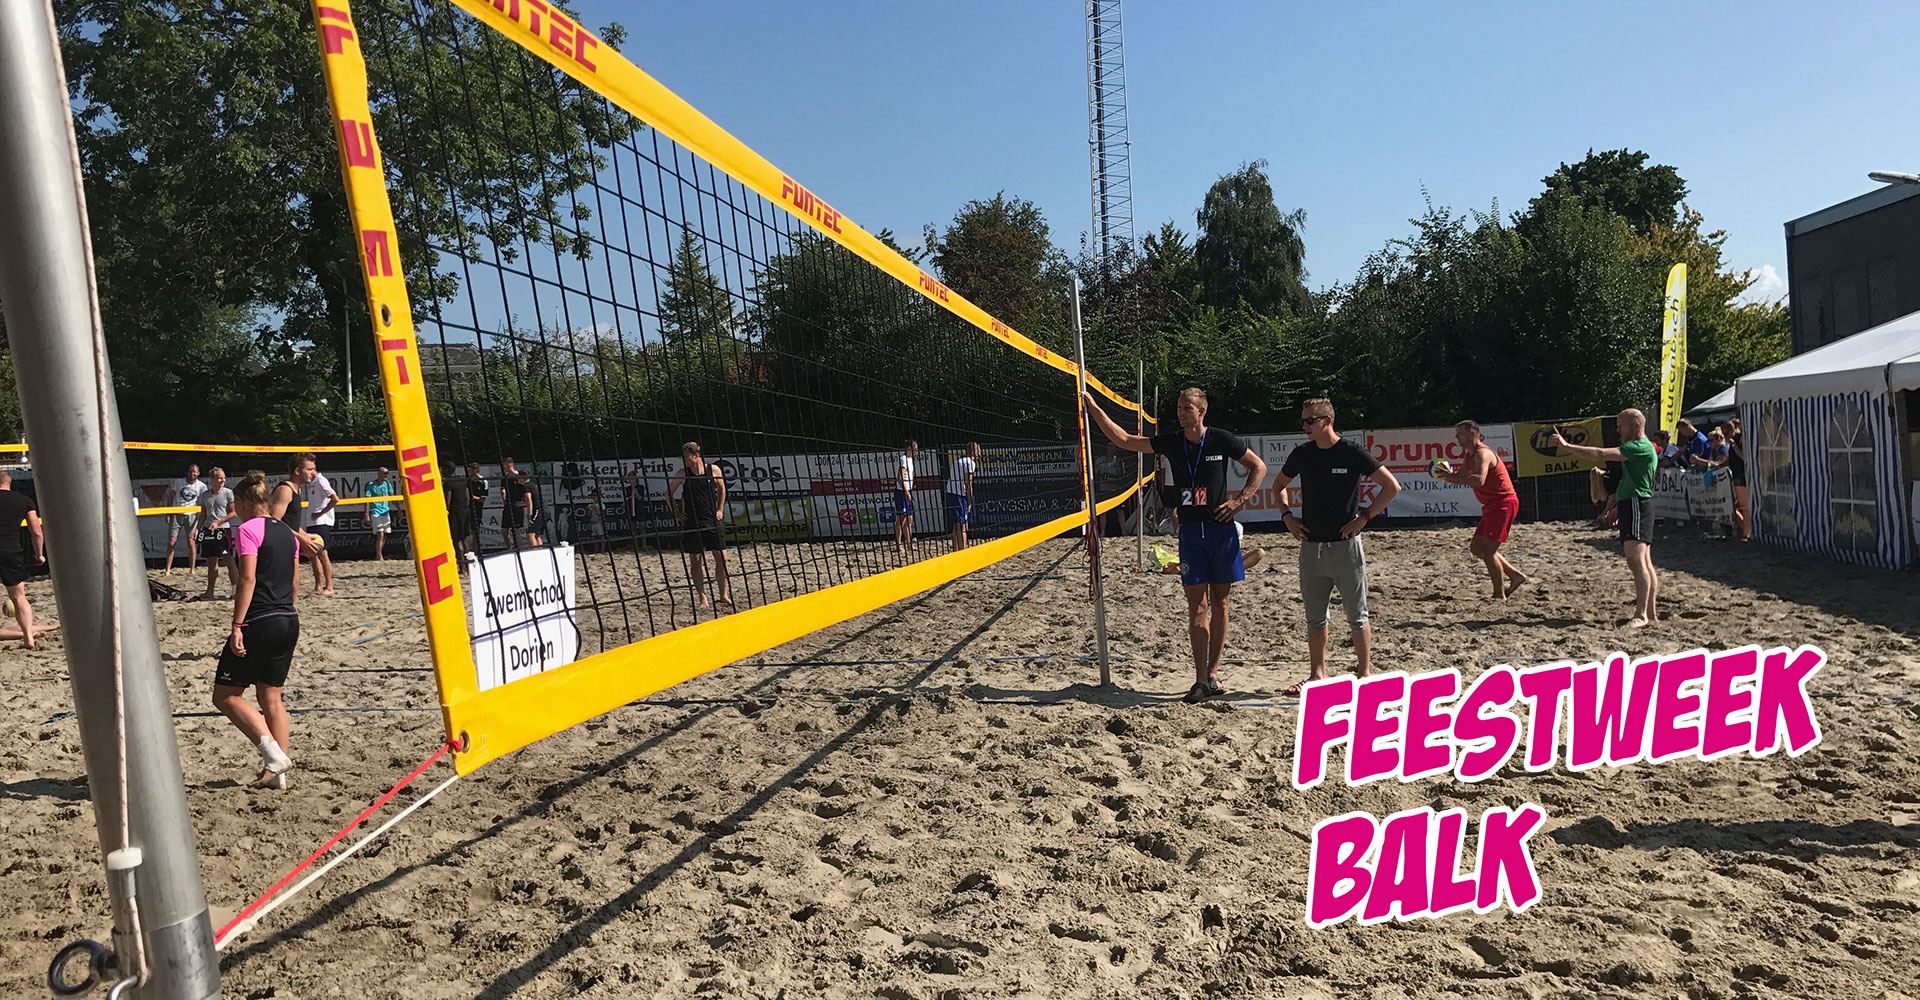 Beachevent Balk